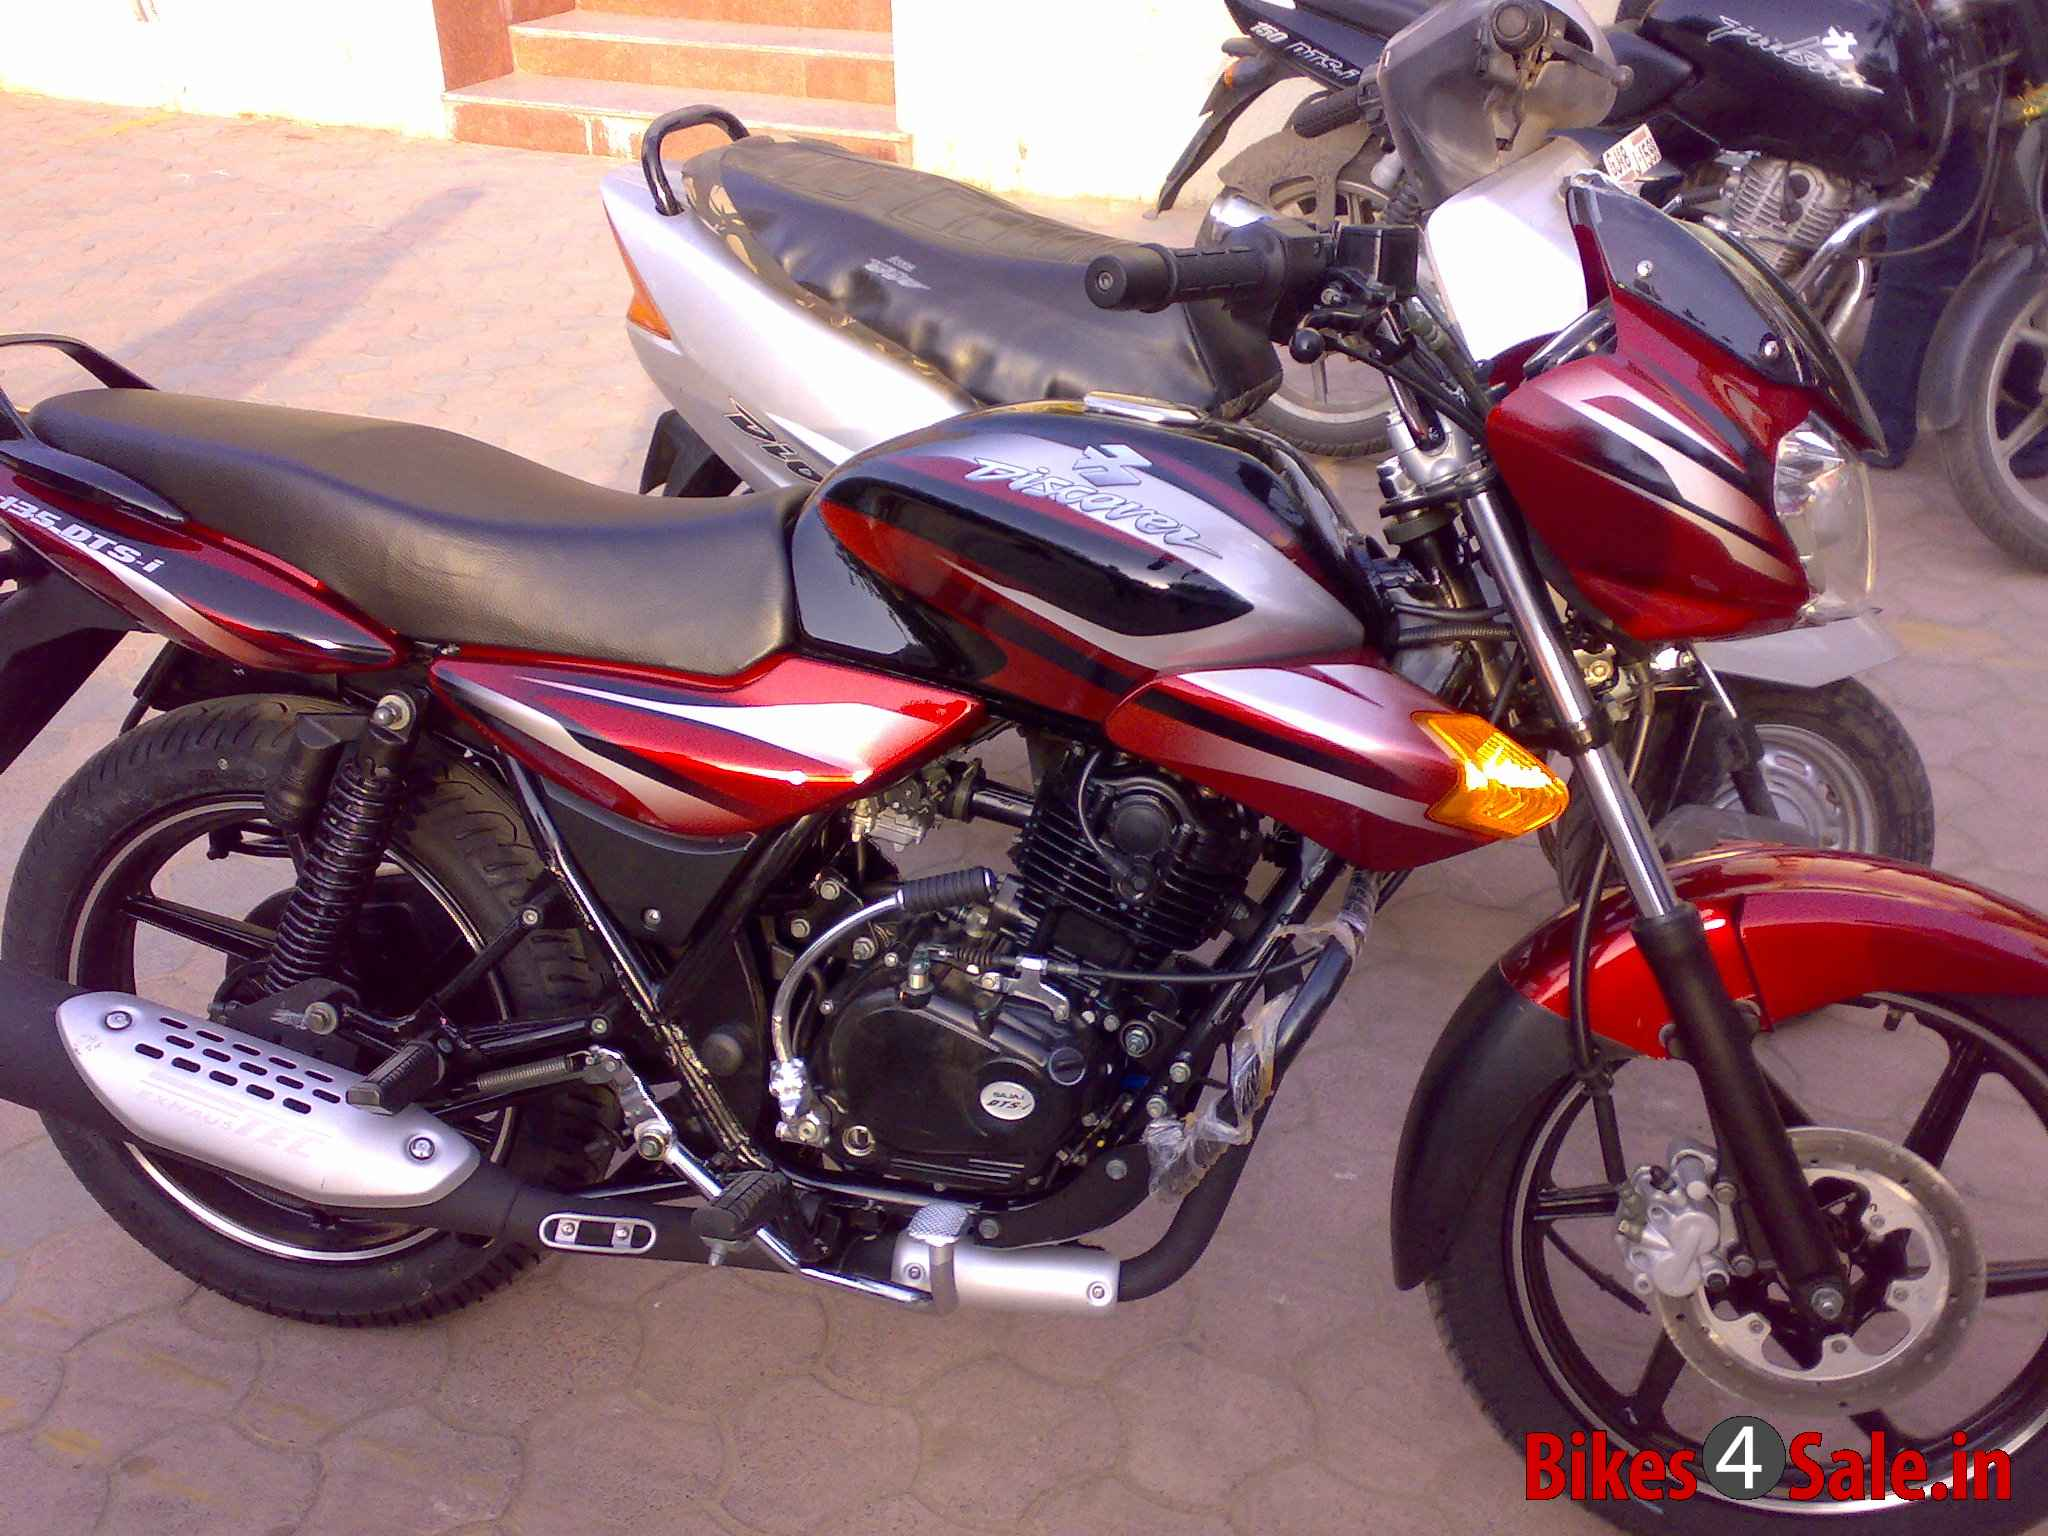 2006 Bajaj Discover DTSi pics specs and information – Discover 135 Motorcycle Wire Diagrams